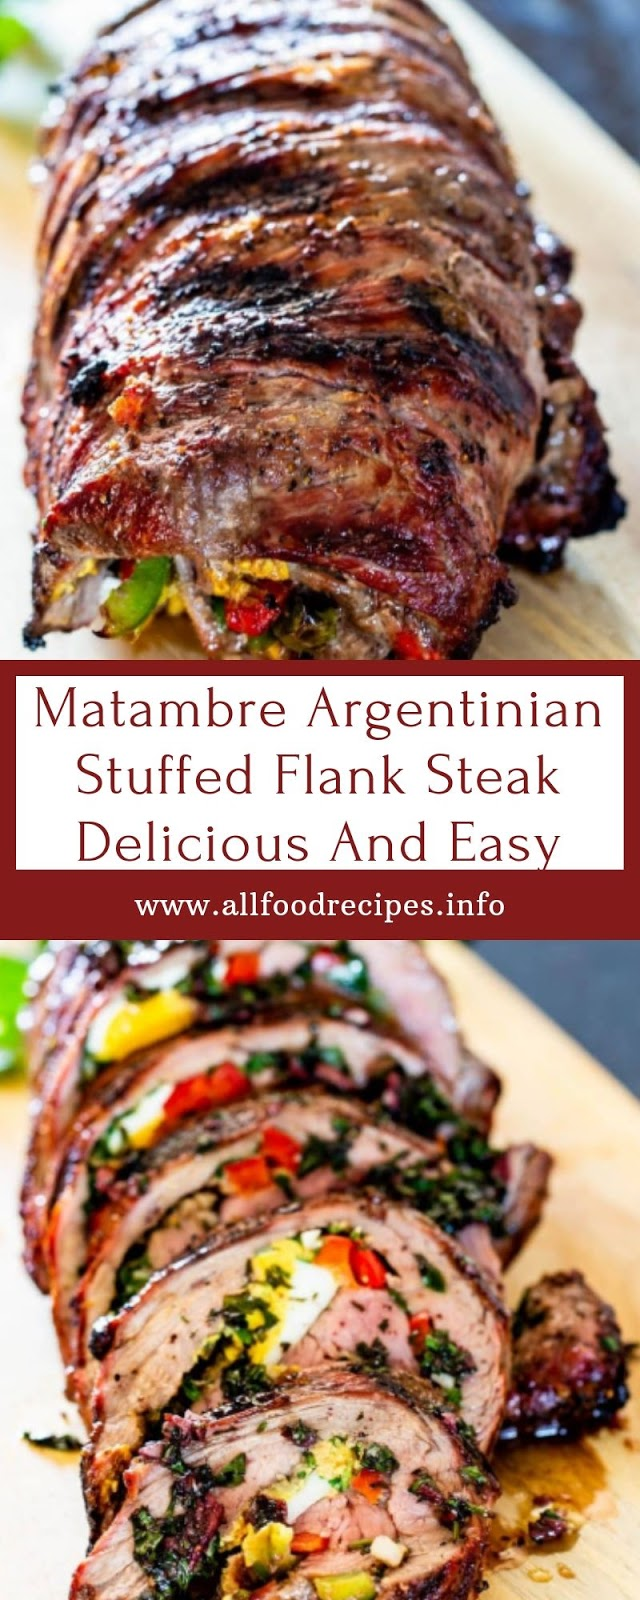 Matambre Argentinian Stuffed Flank Steak Delicious And Easy